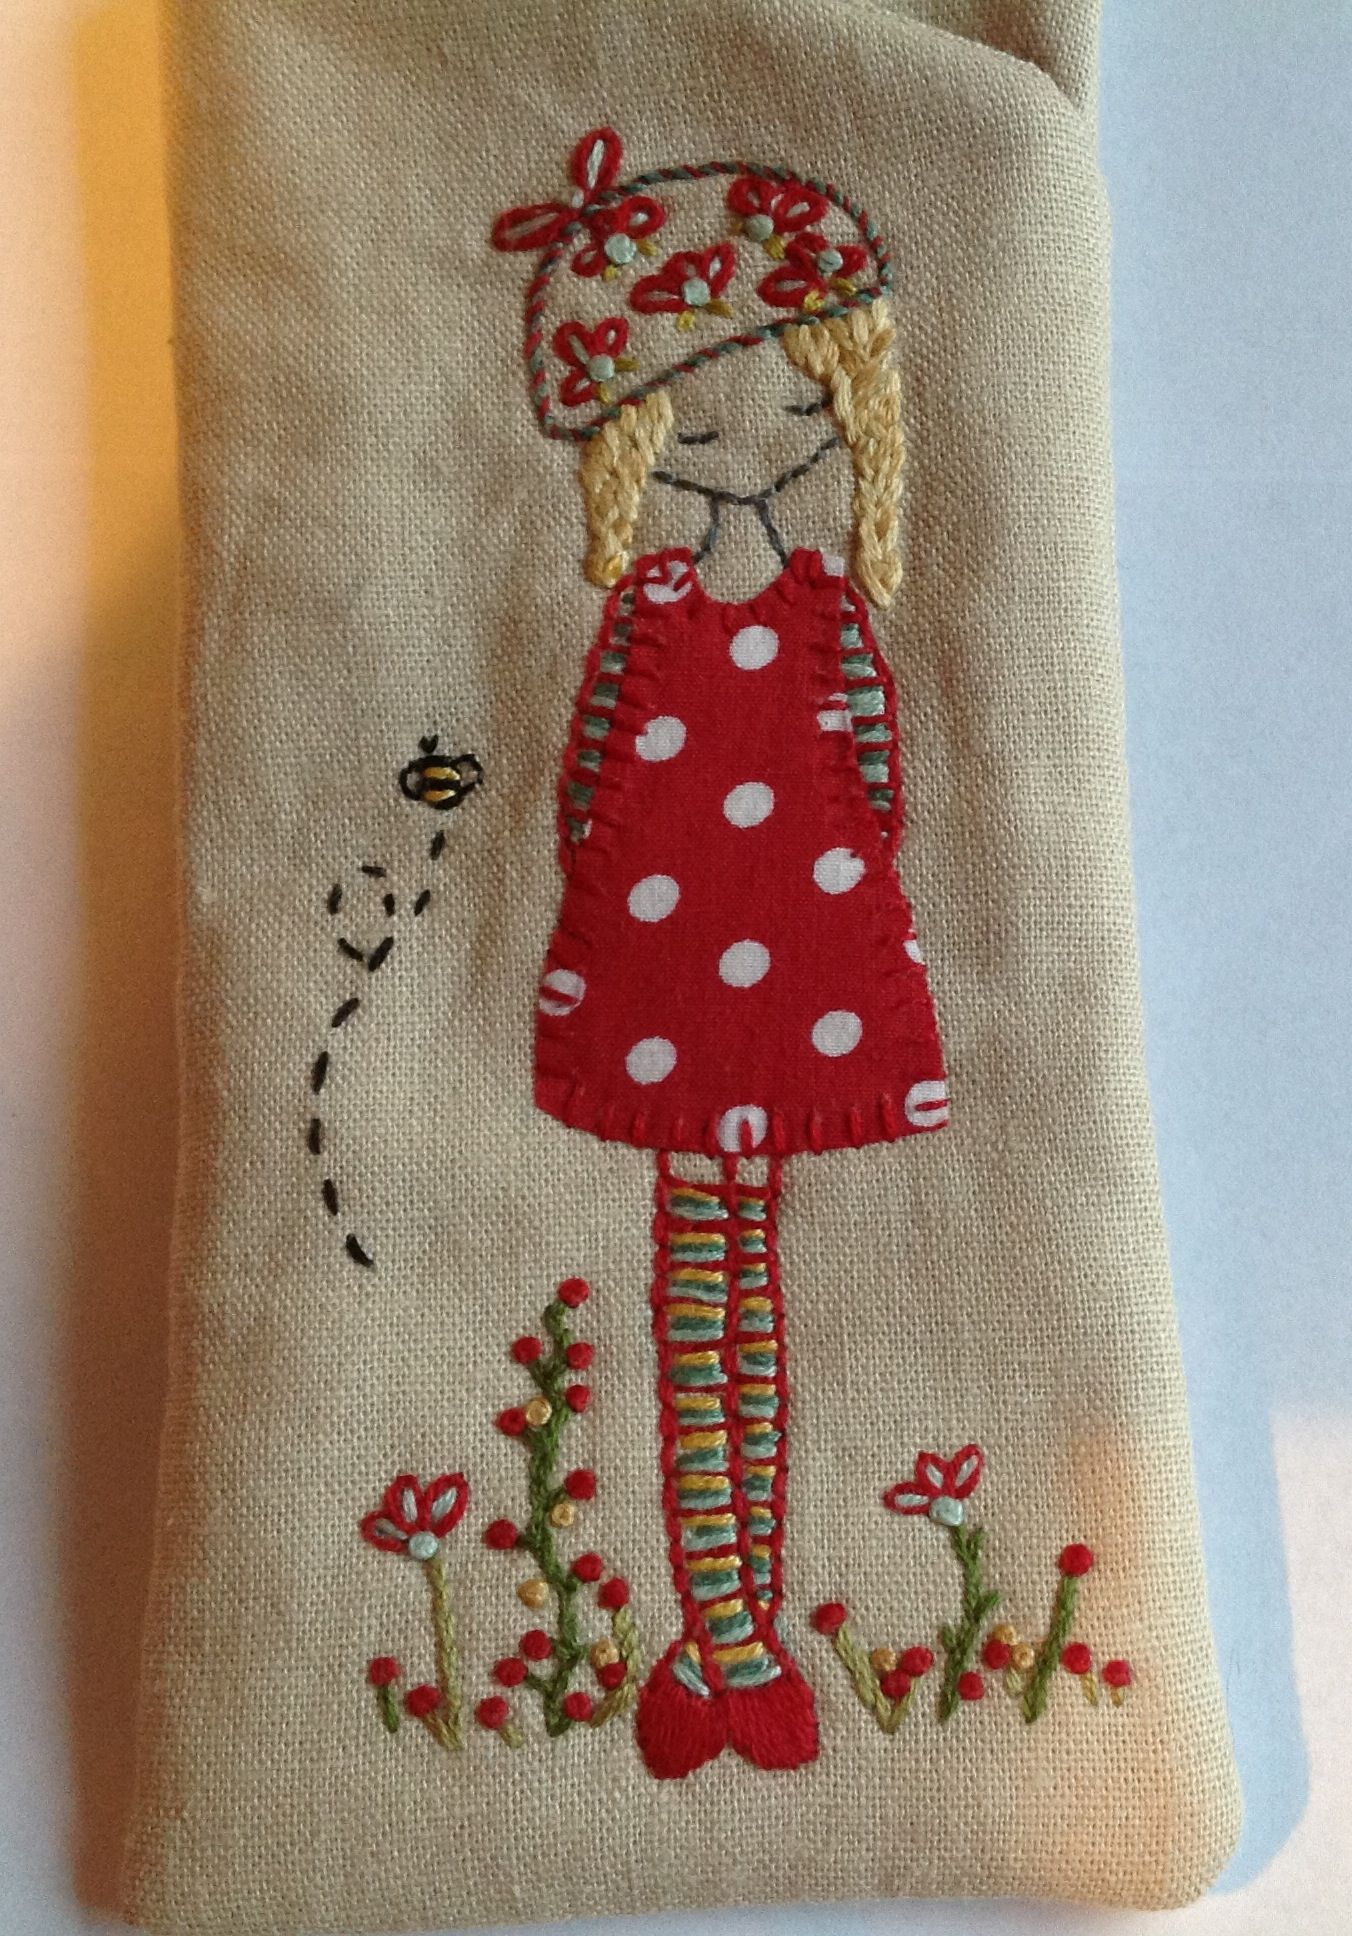 Spectacles pouch made using Irish linen and Lilipopo ...